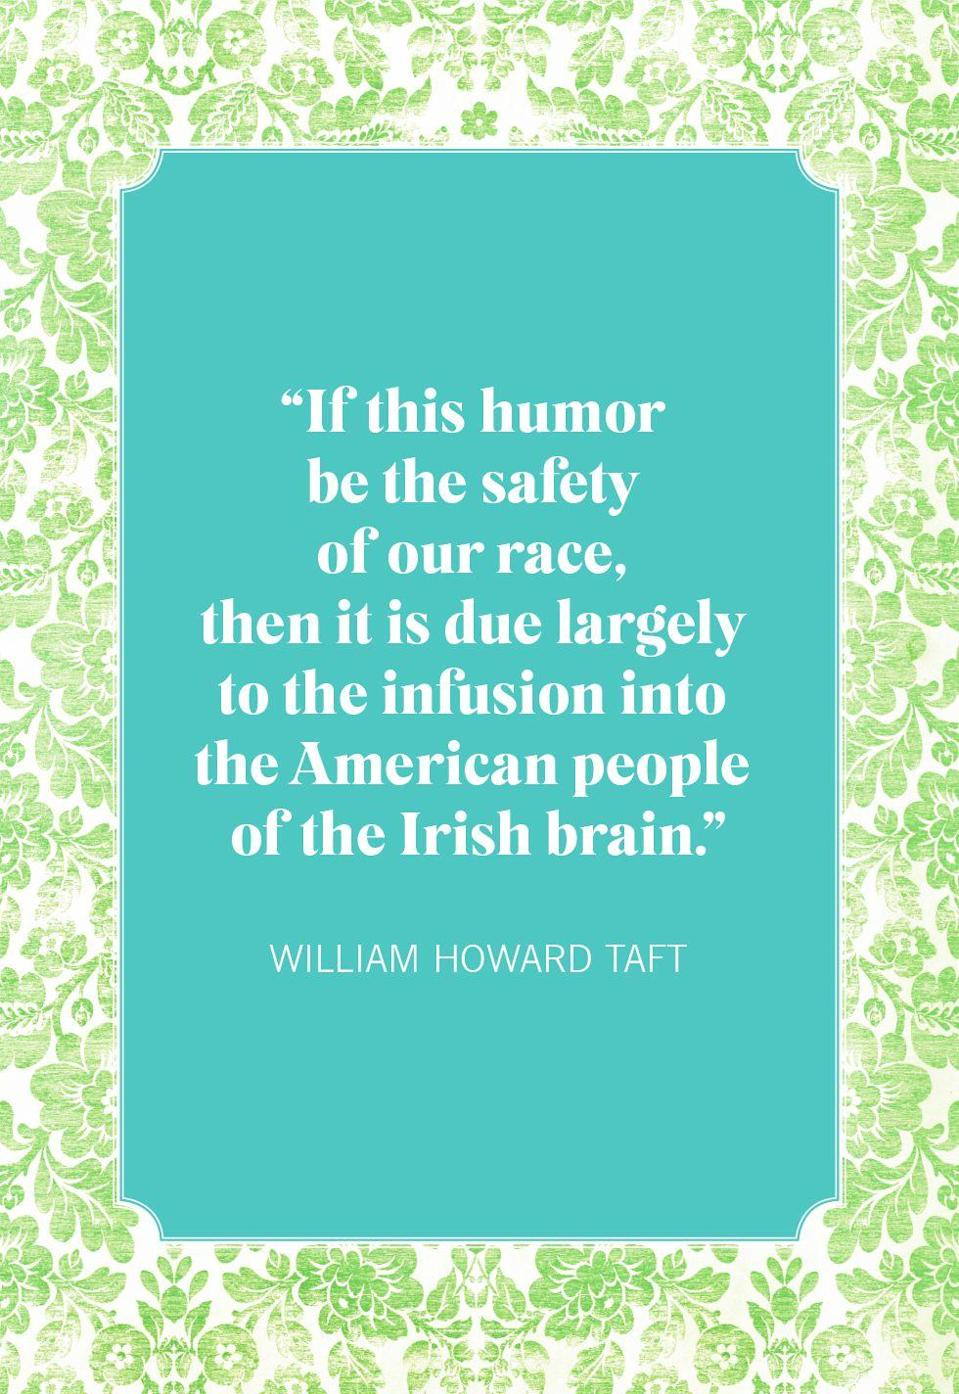 "<p>""If this humor be the safety of our race, then it is due largely to the infusion into the American people of the Irish brain.""</p>"